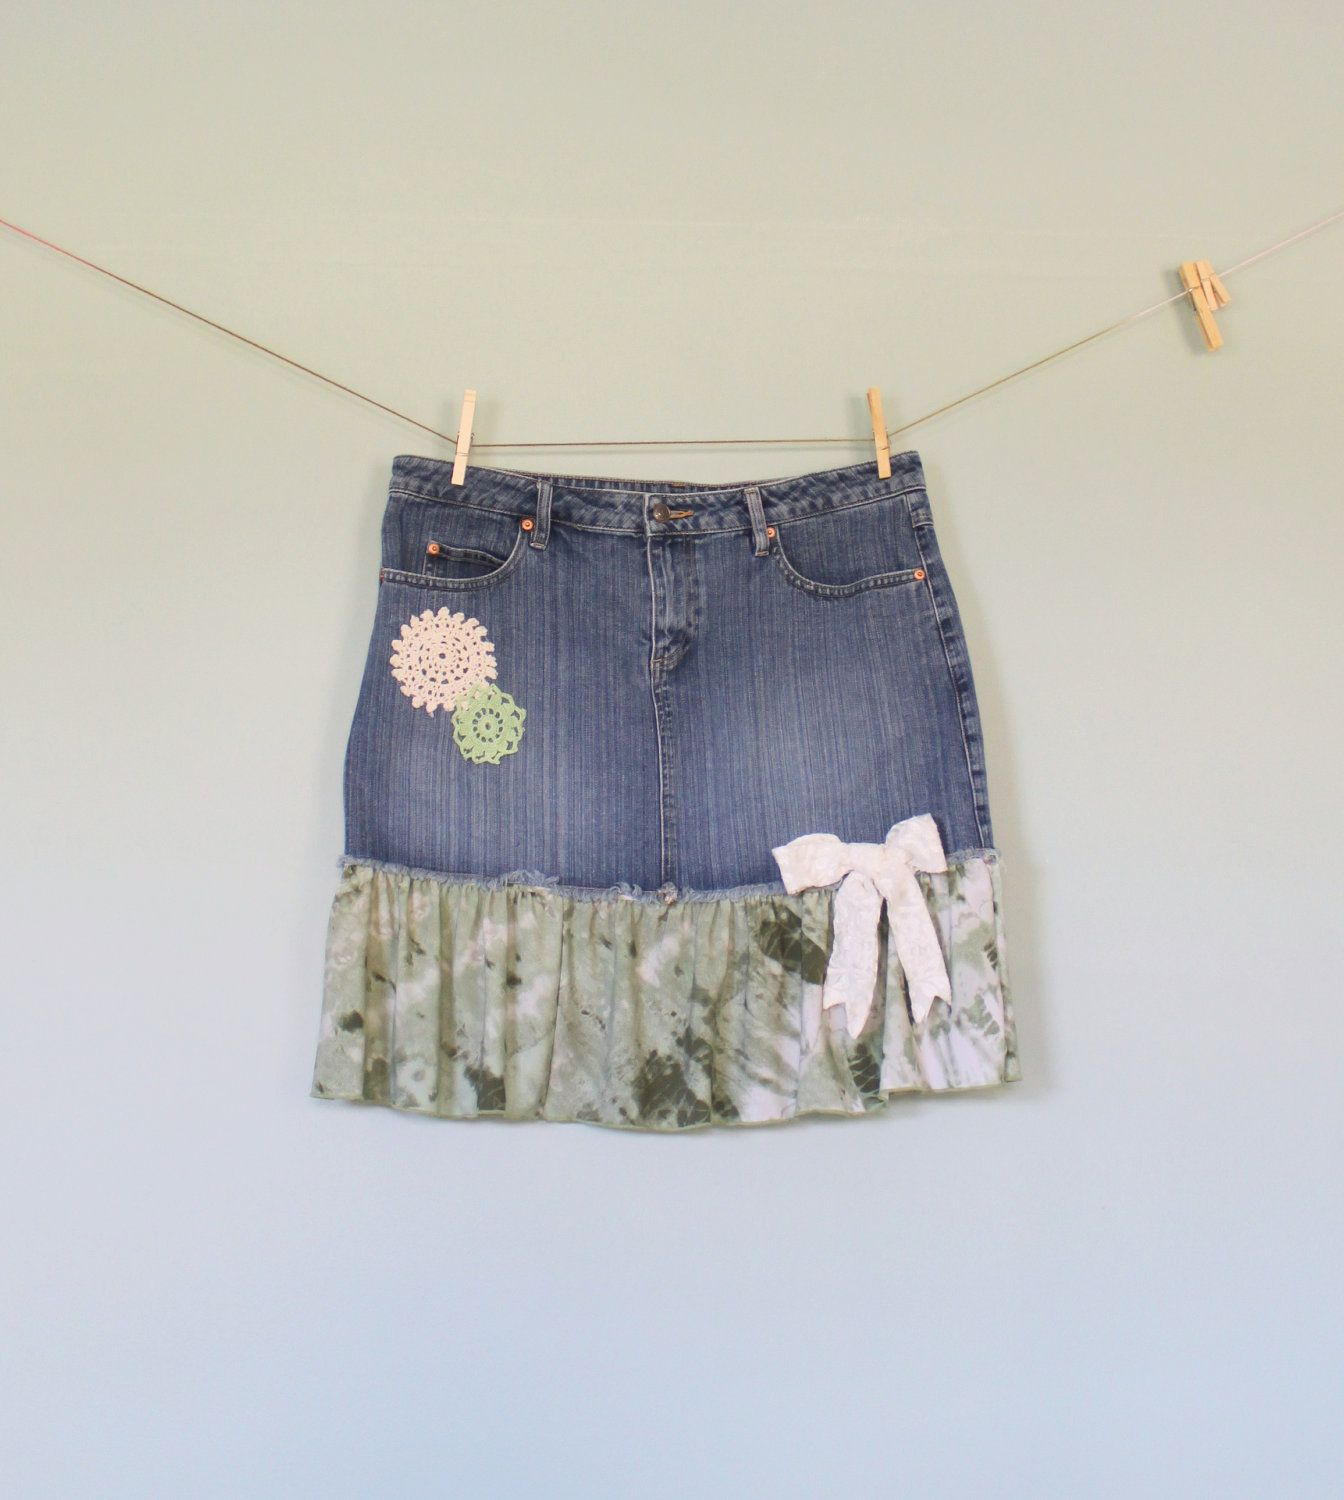 Hippie, Bohemian, Boho, Country Girl, Country Chic, Camo, Tattered Upcycled Women's Denim Blue Jean Skirt  Jeans